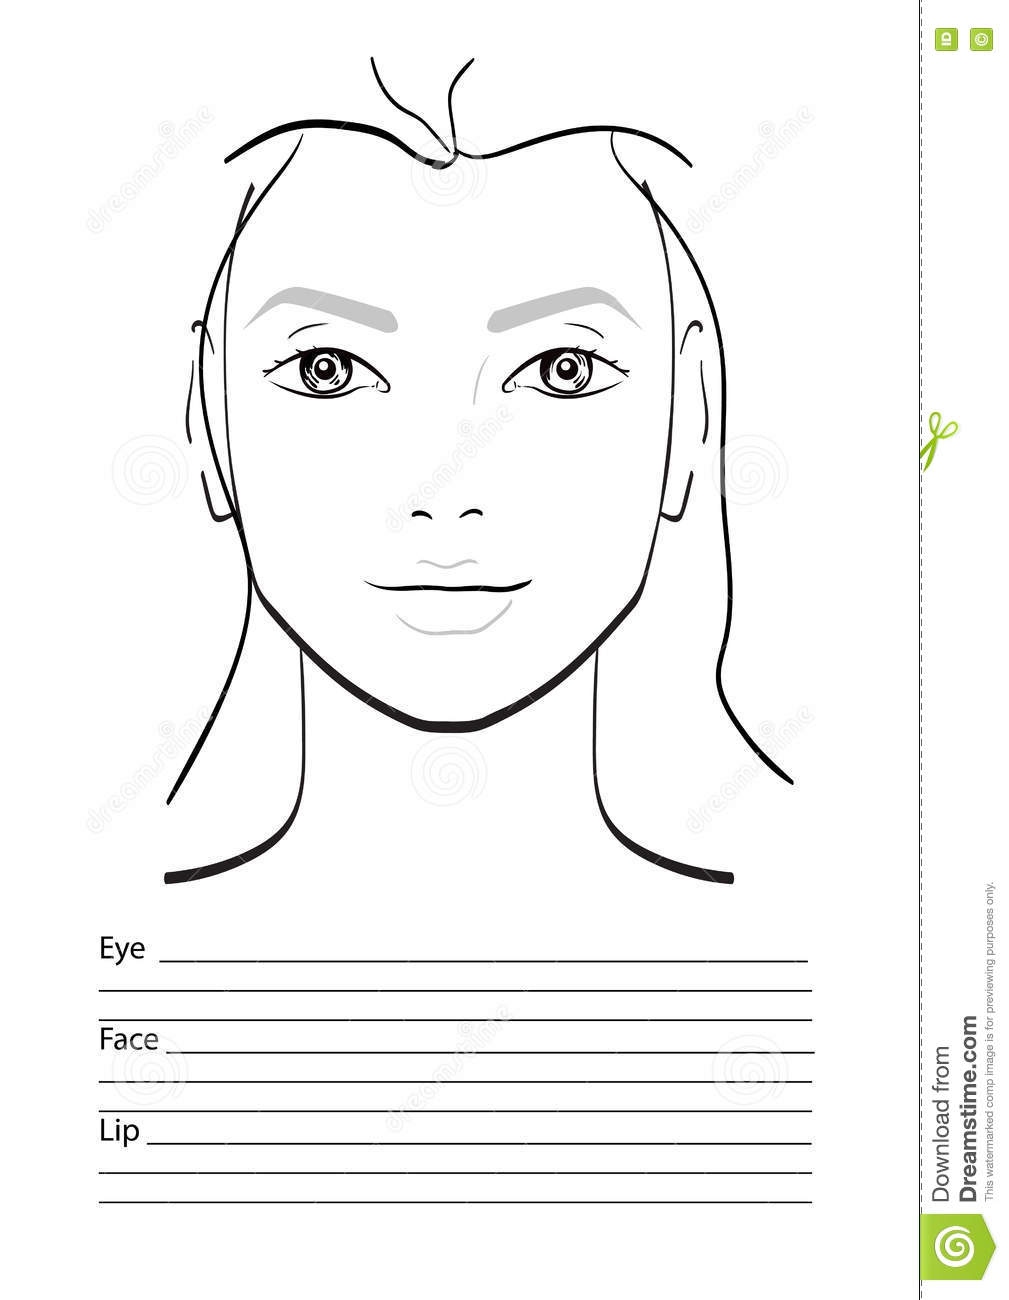 Face chart makeup artist blank stock illustration illustration of download face chart makeup artist blank stock illustration illustration of beauty eyebrows maxwellsz